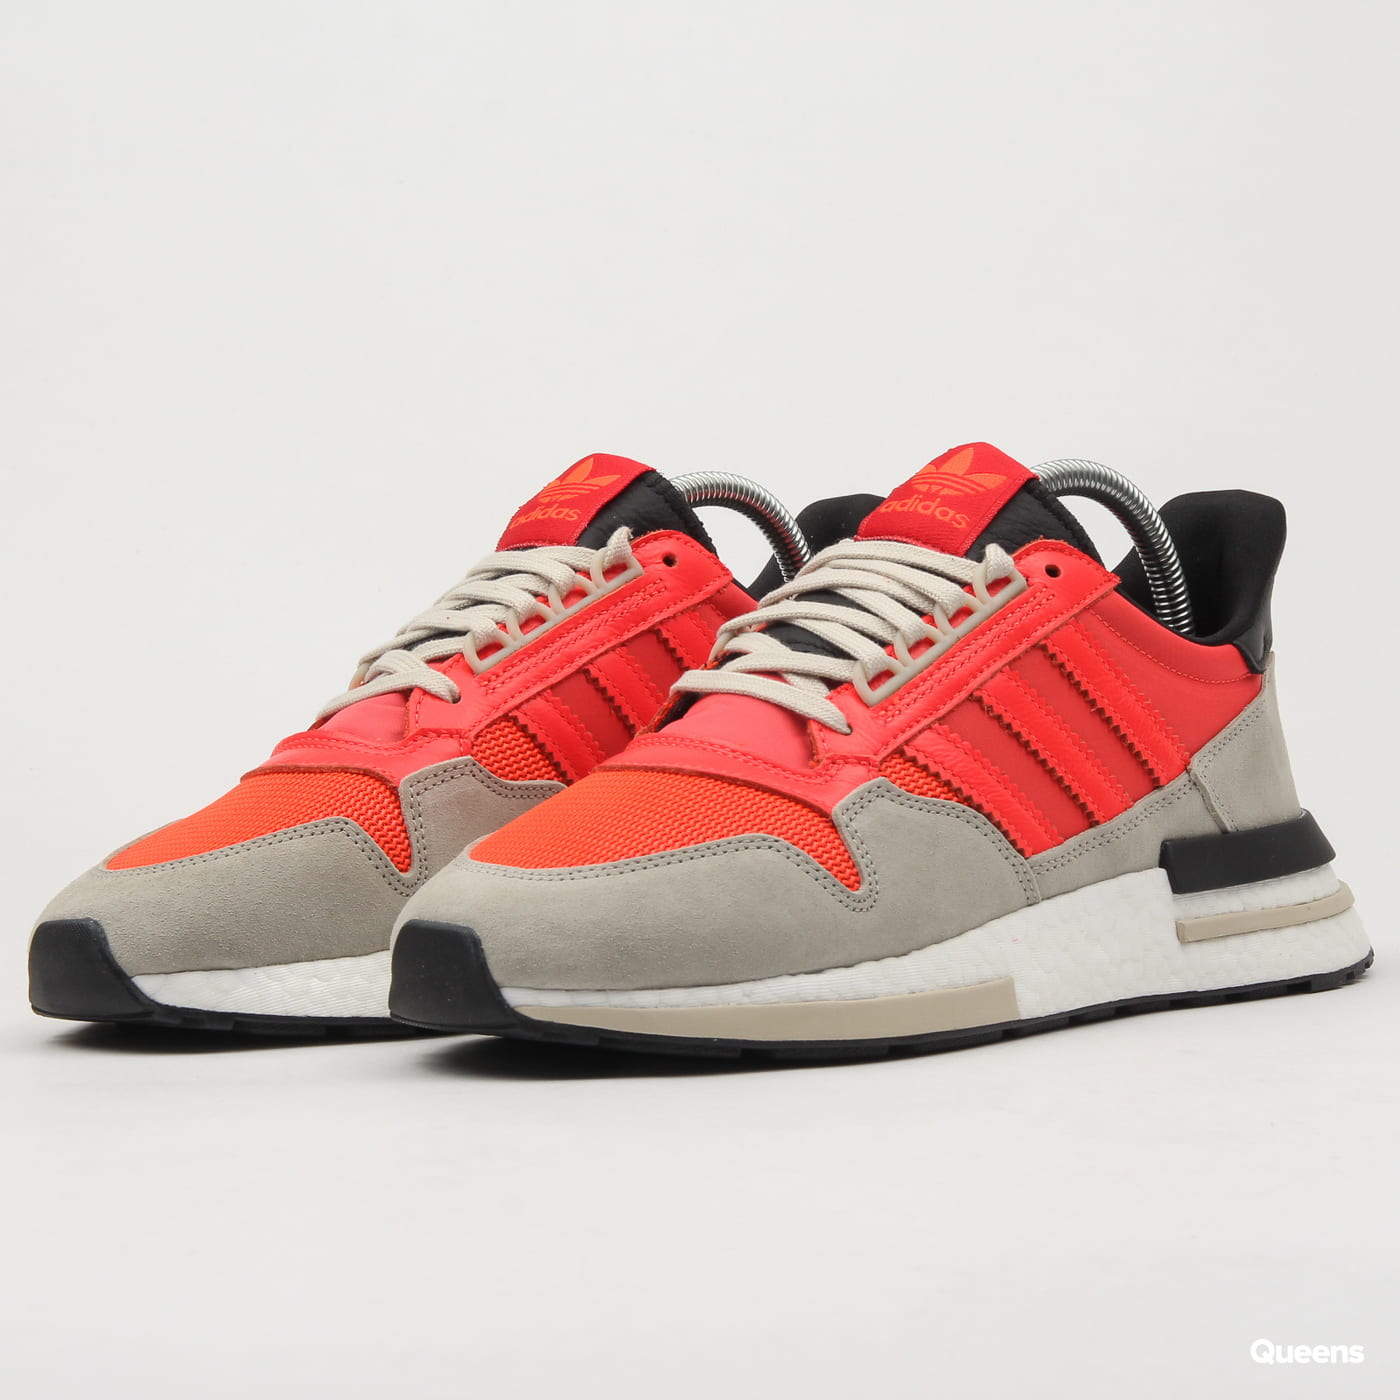 brand new arriving new design adidas Originals ZX 500 RM solar red / cblack / ftwwht